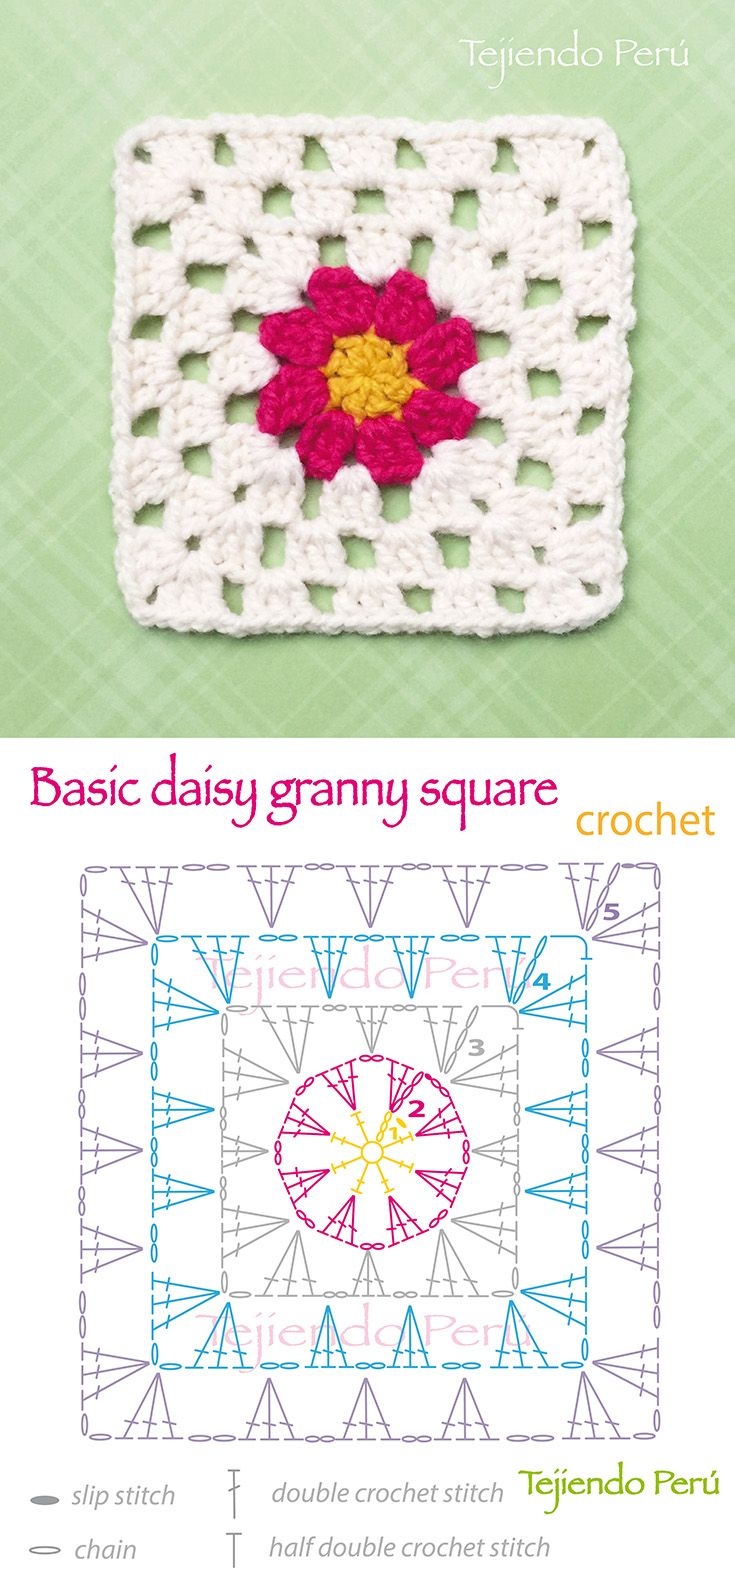 Crochet: basic daisy granny square pattern (diagram or chart)!